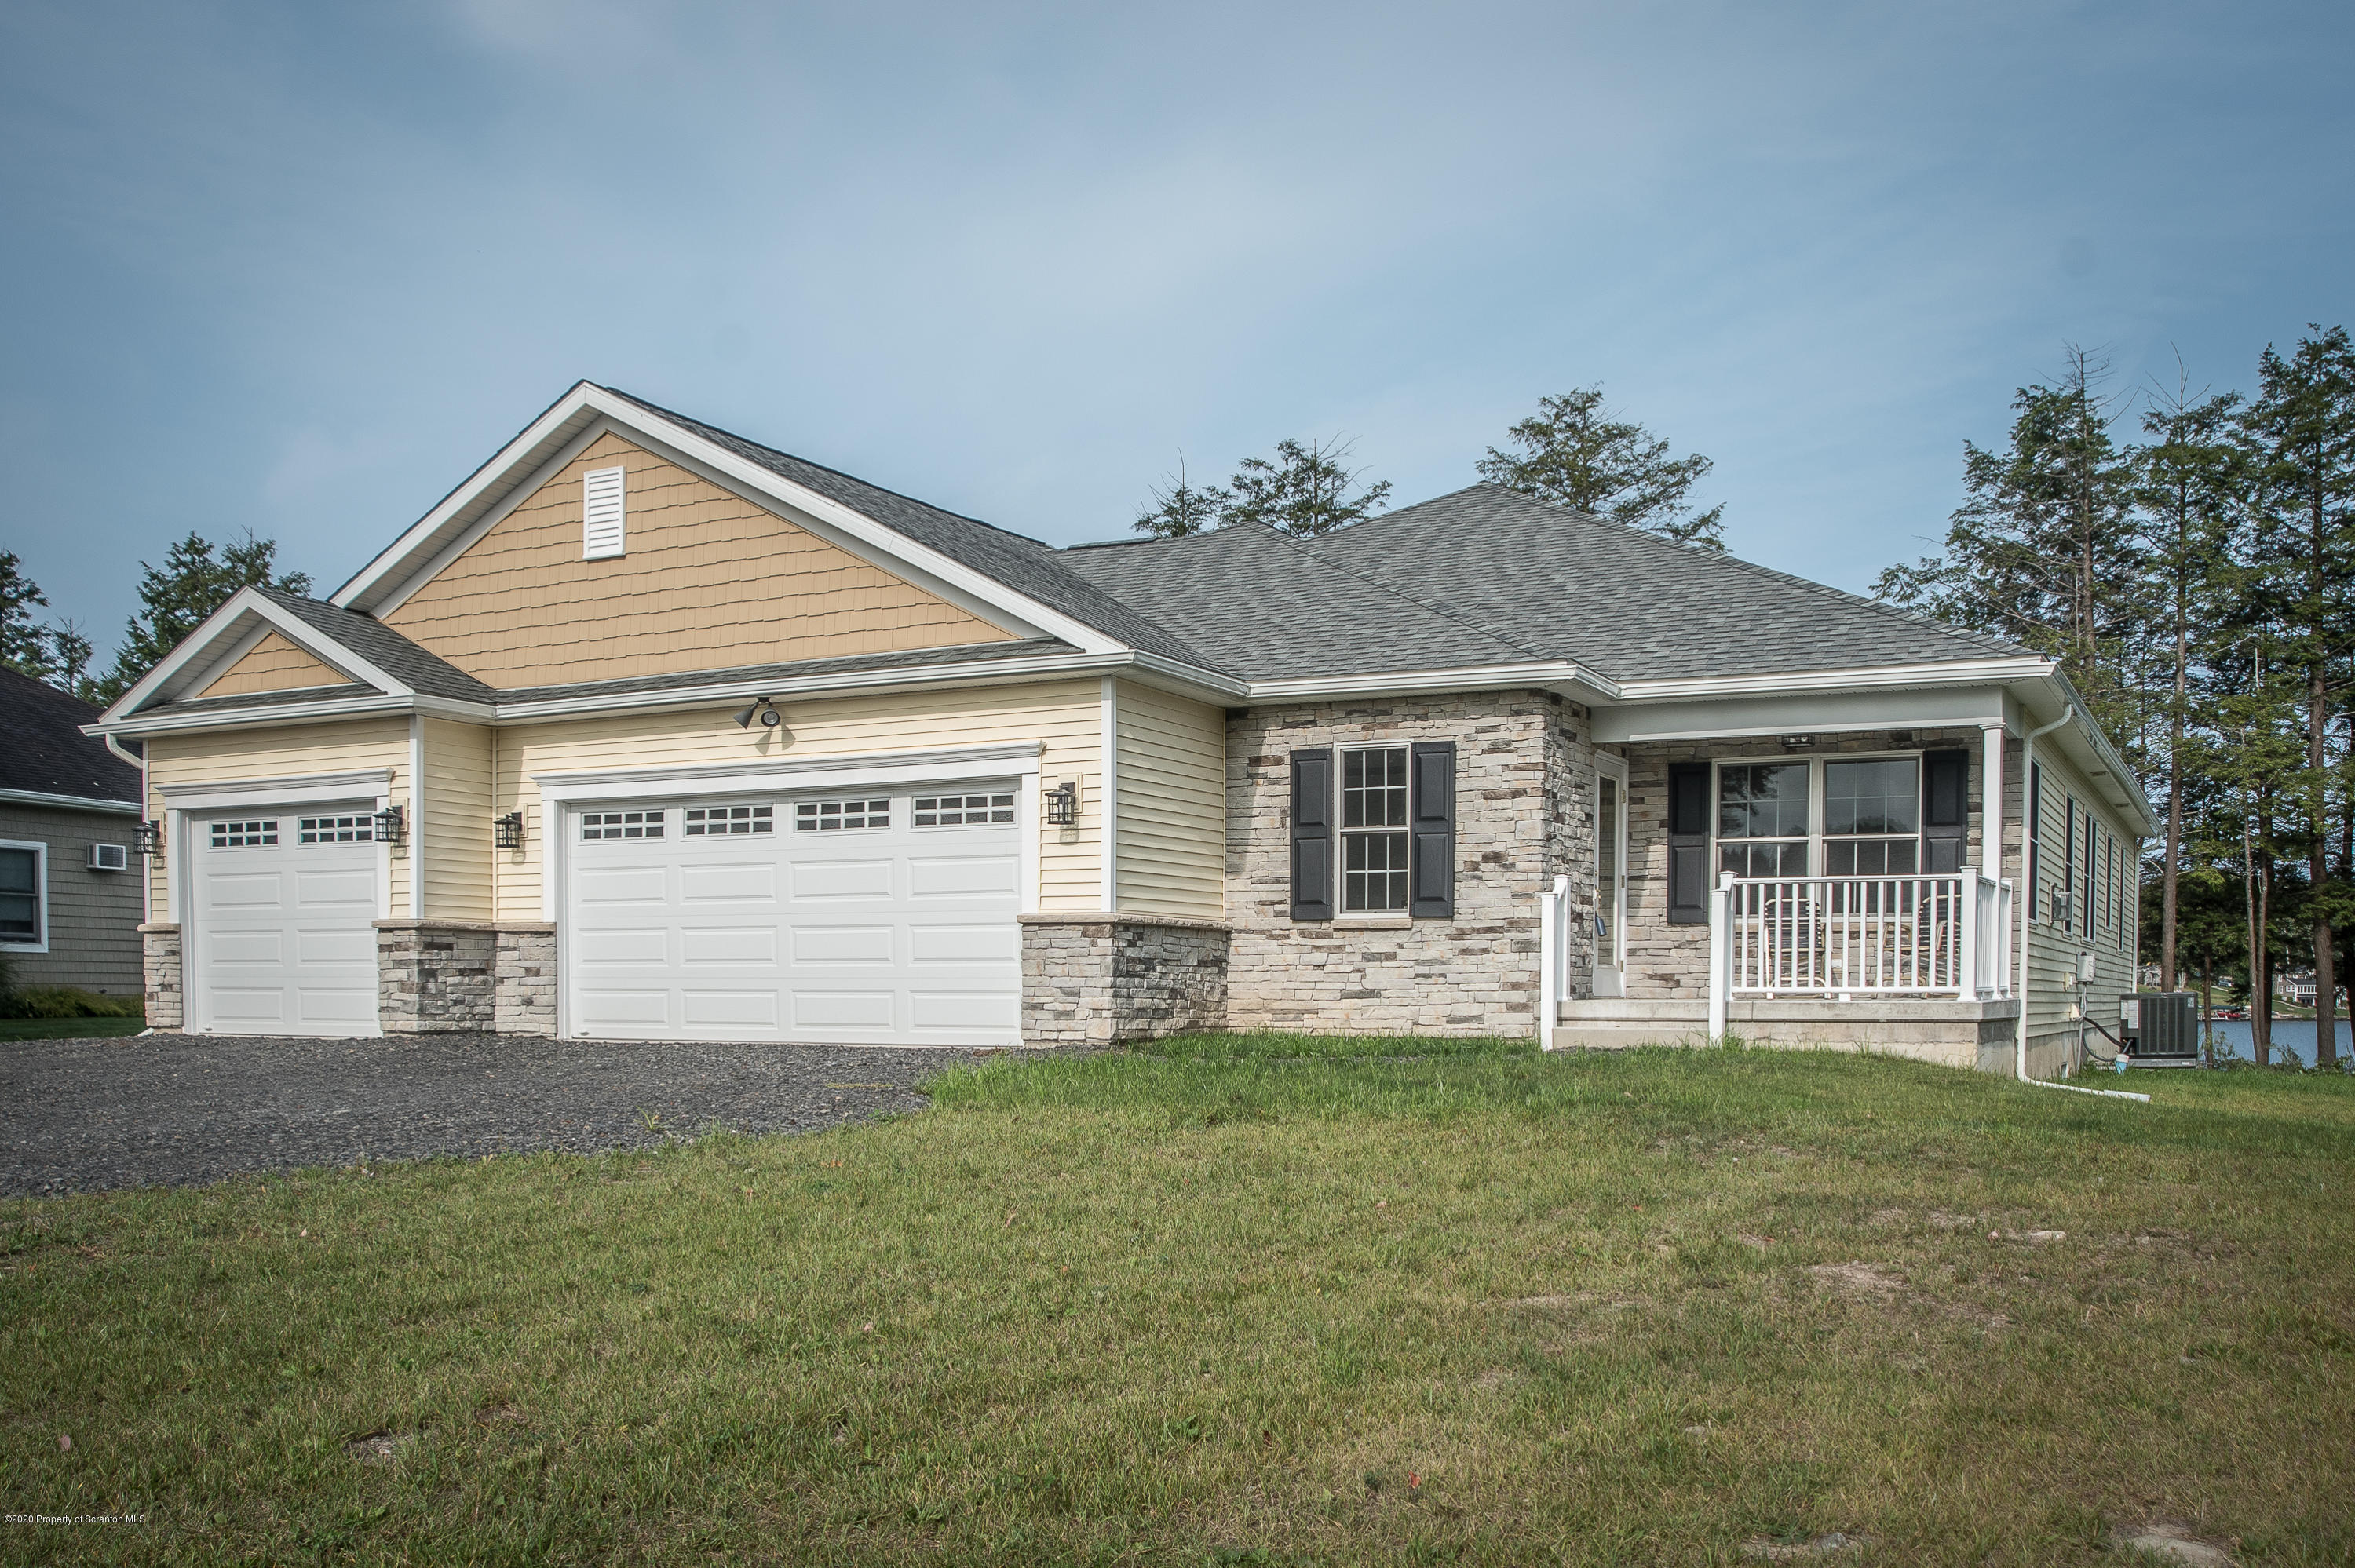 177 Wagner Blvd, Greenfield Twp, Pennsylvania 18407, 3 Bedrooms Bedrooms, 7 Rooms Rooms,3 BathroomsBathrooms,Single Family,For Sale,Wagner Blvd,20-4350